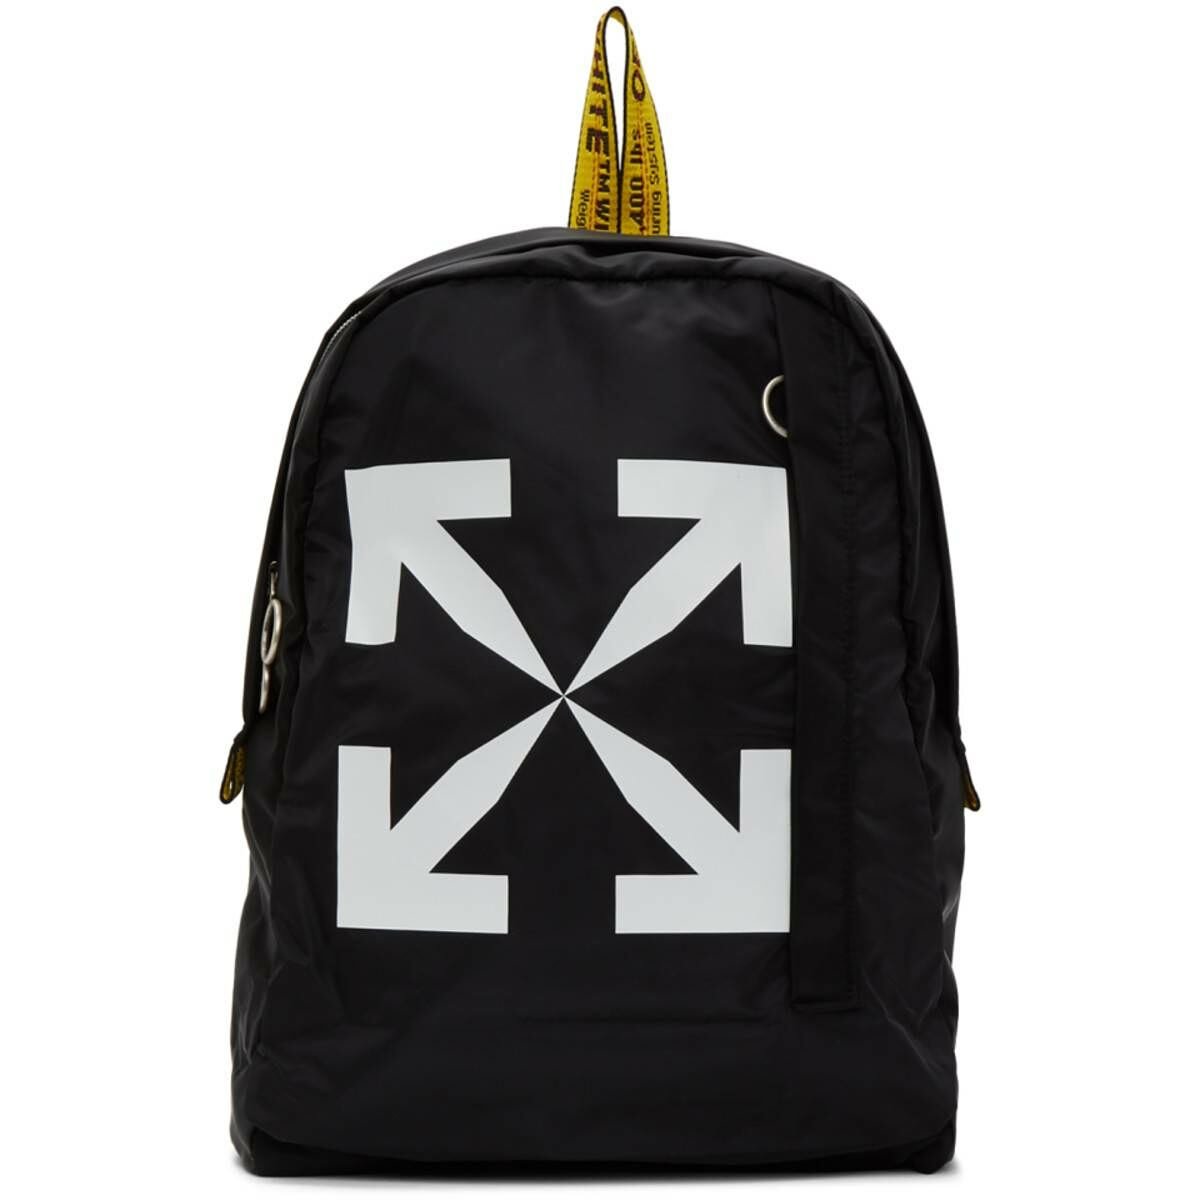 Off-White Black Arrows Easy Backpack Ssense USA WOMEN Women ACCESSORIES Womens BAGS